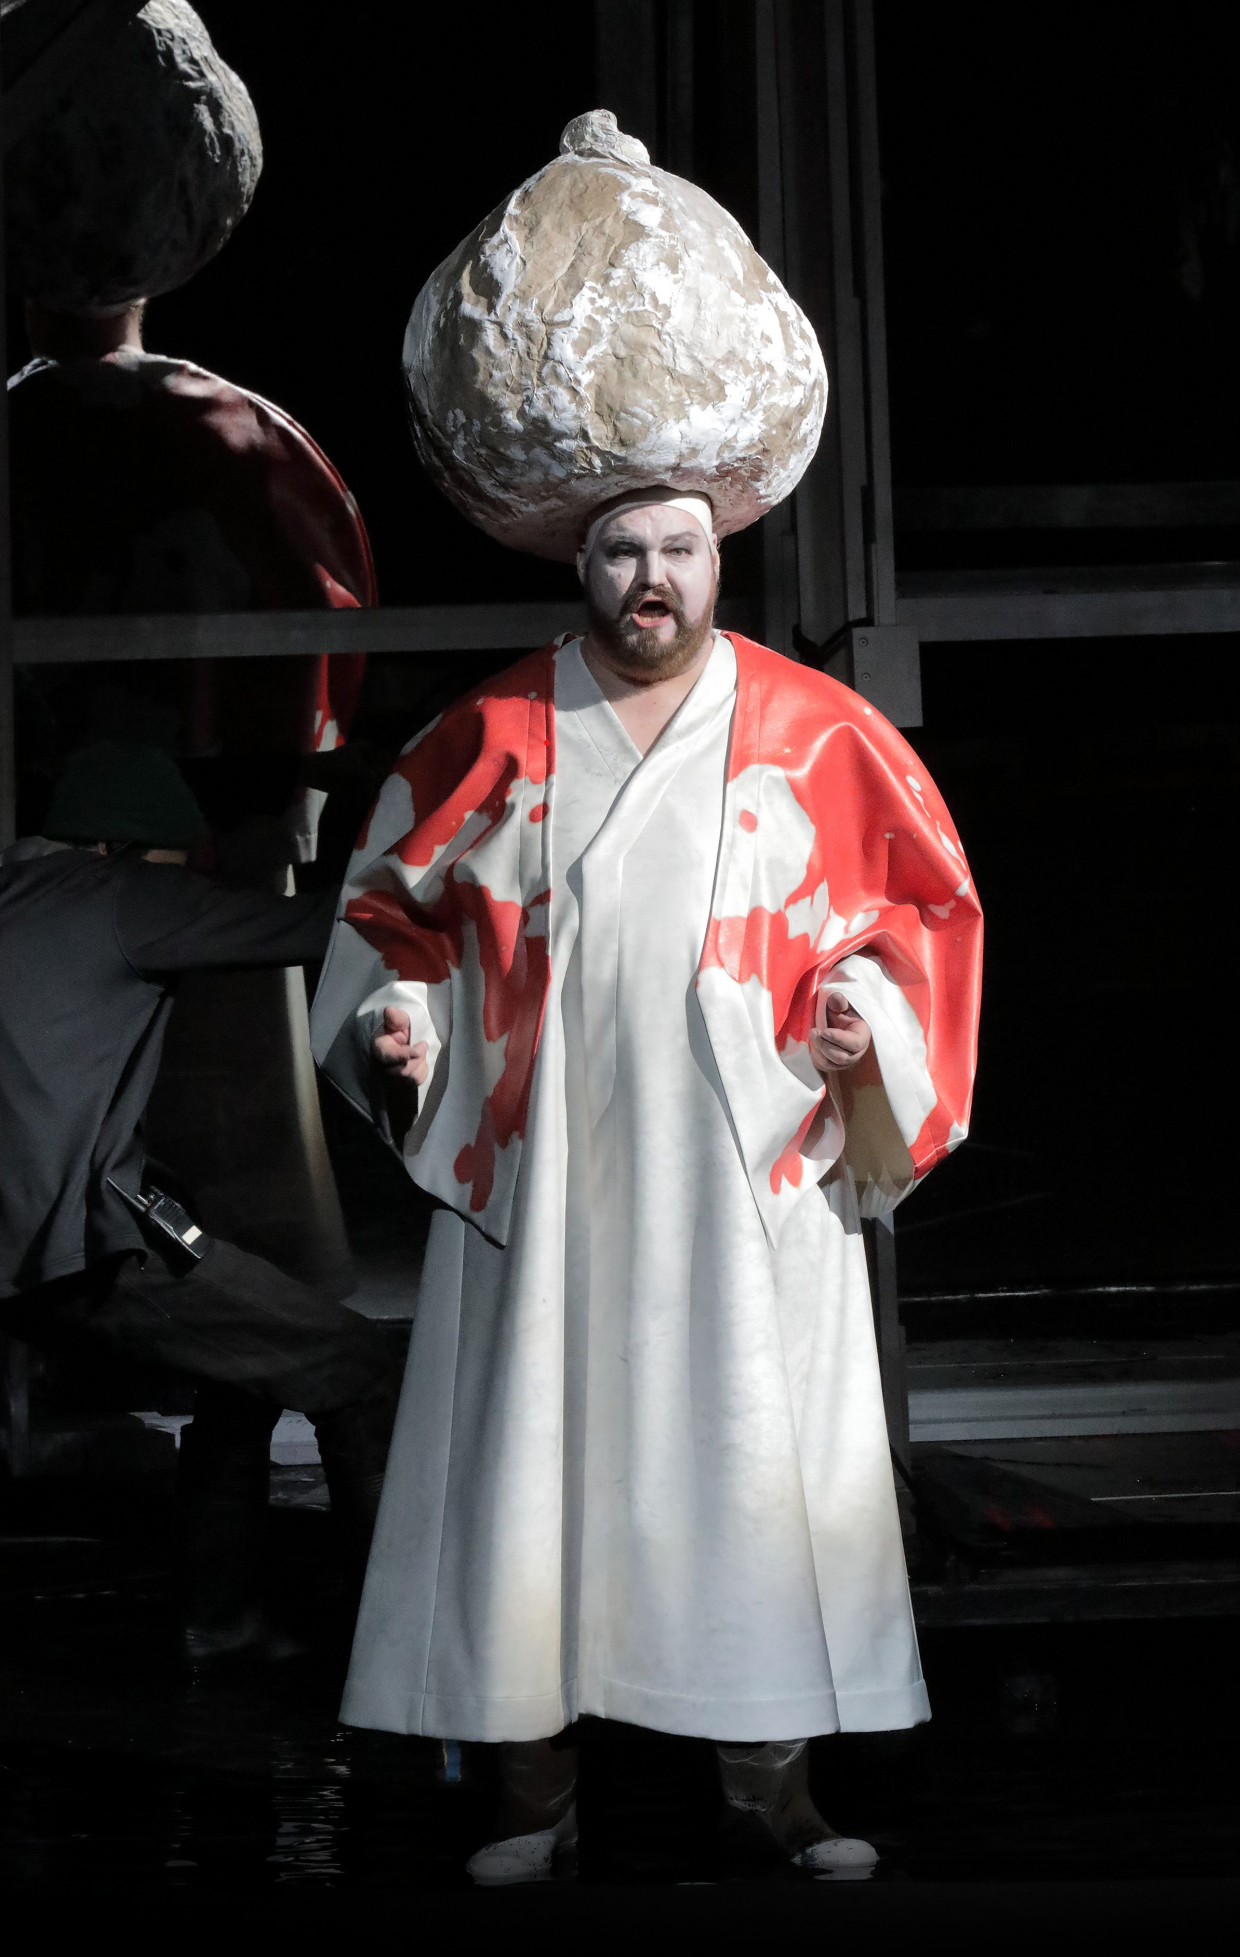 Sultan Soliman in KARL V. - Bayer. Staatsoper München 2019. Copyright Wilfried Hösl.